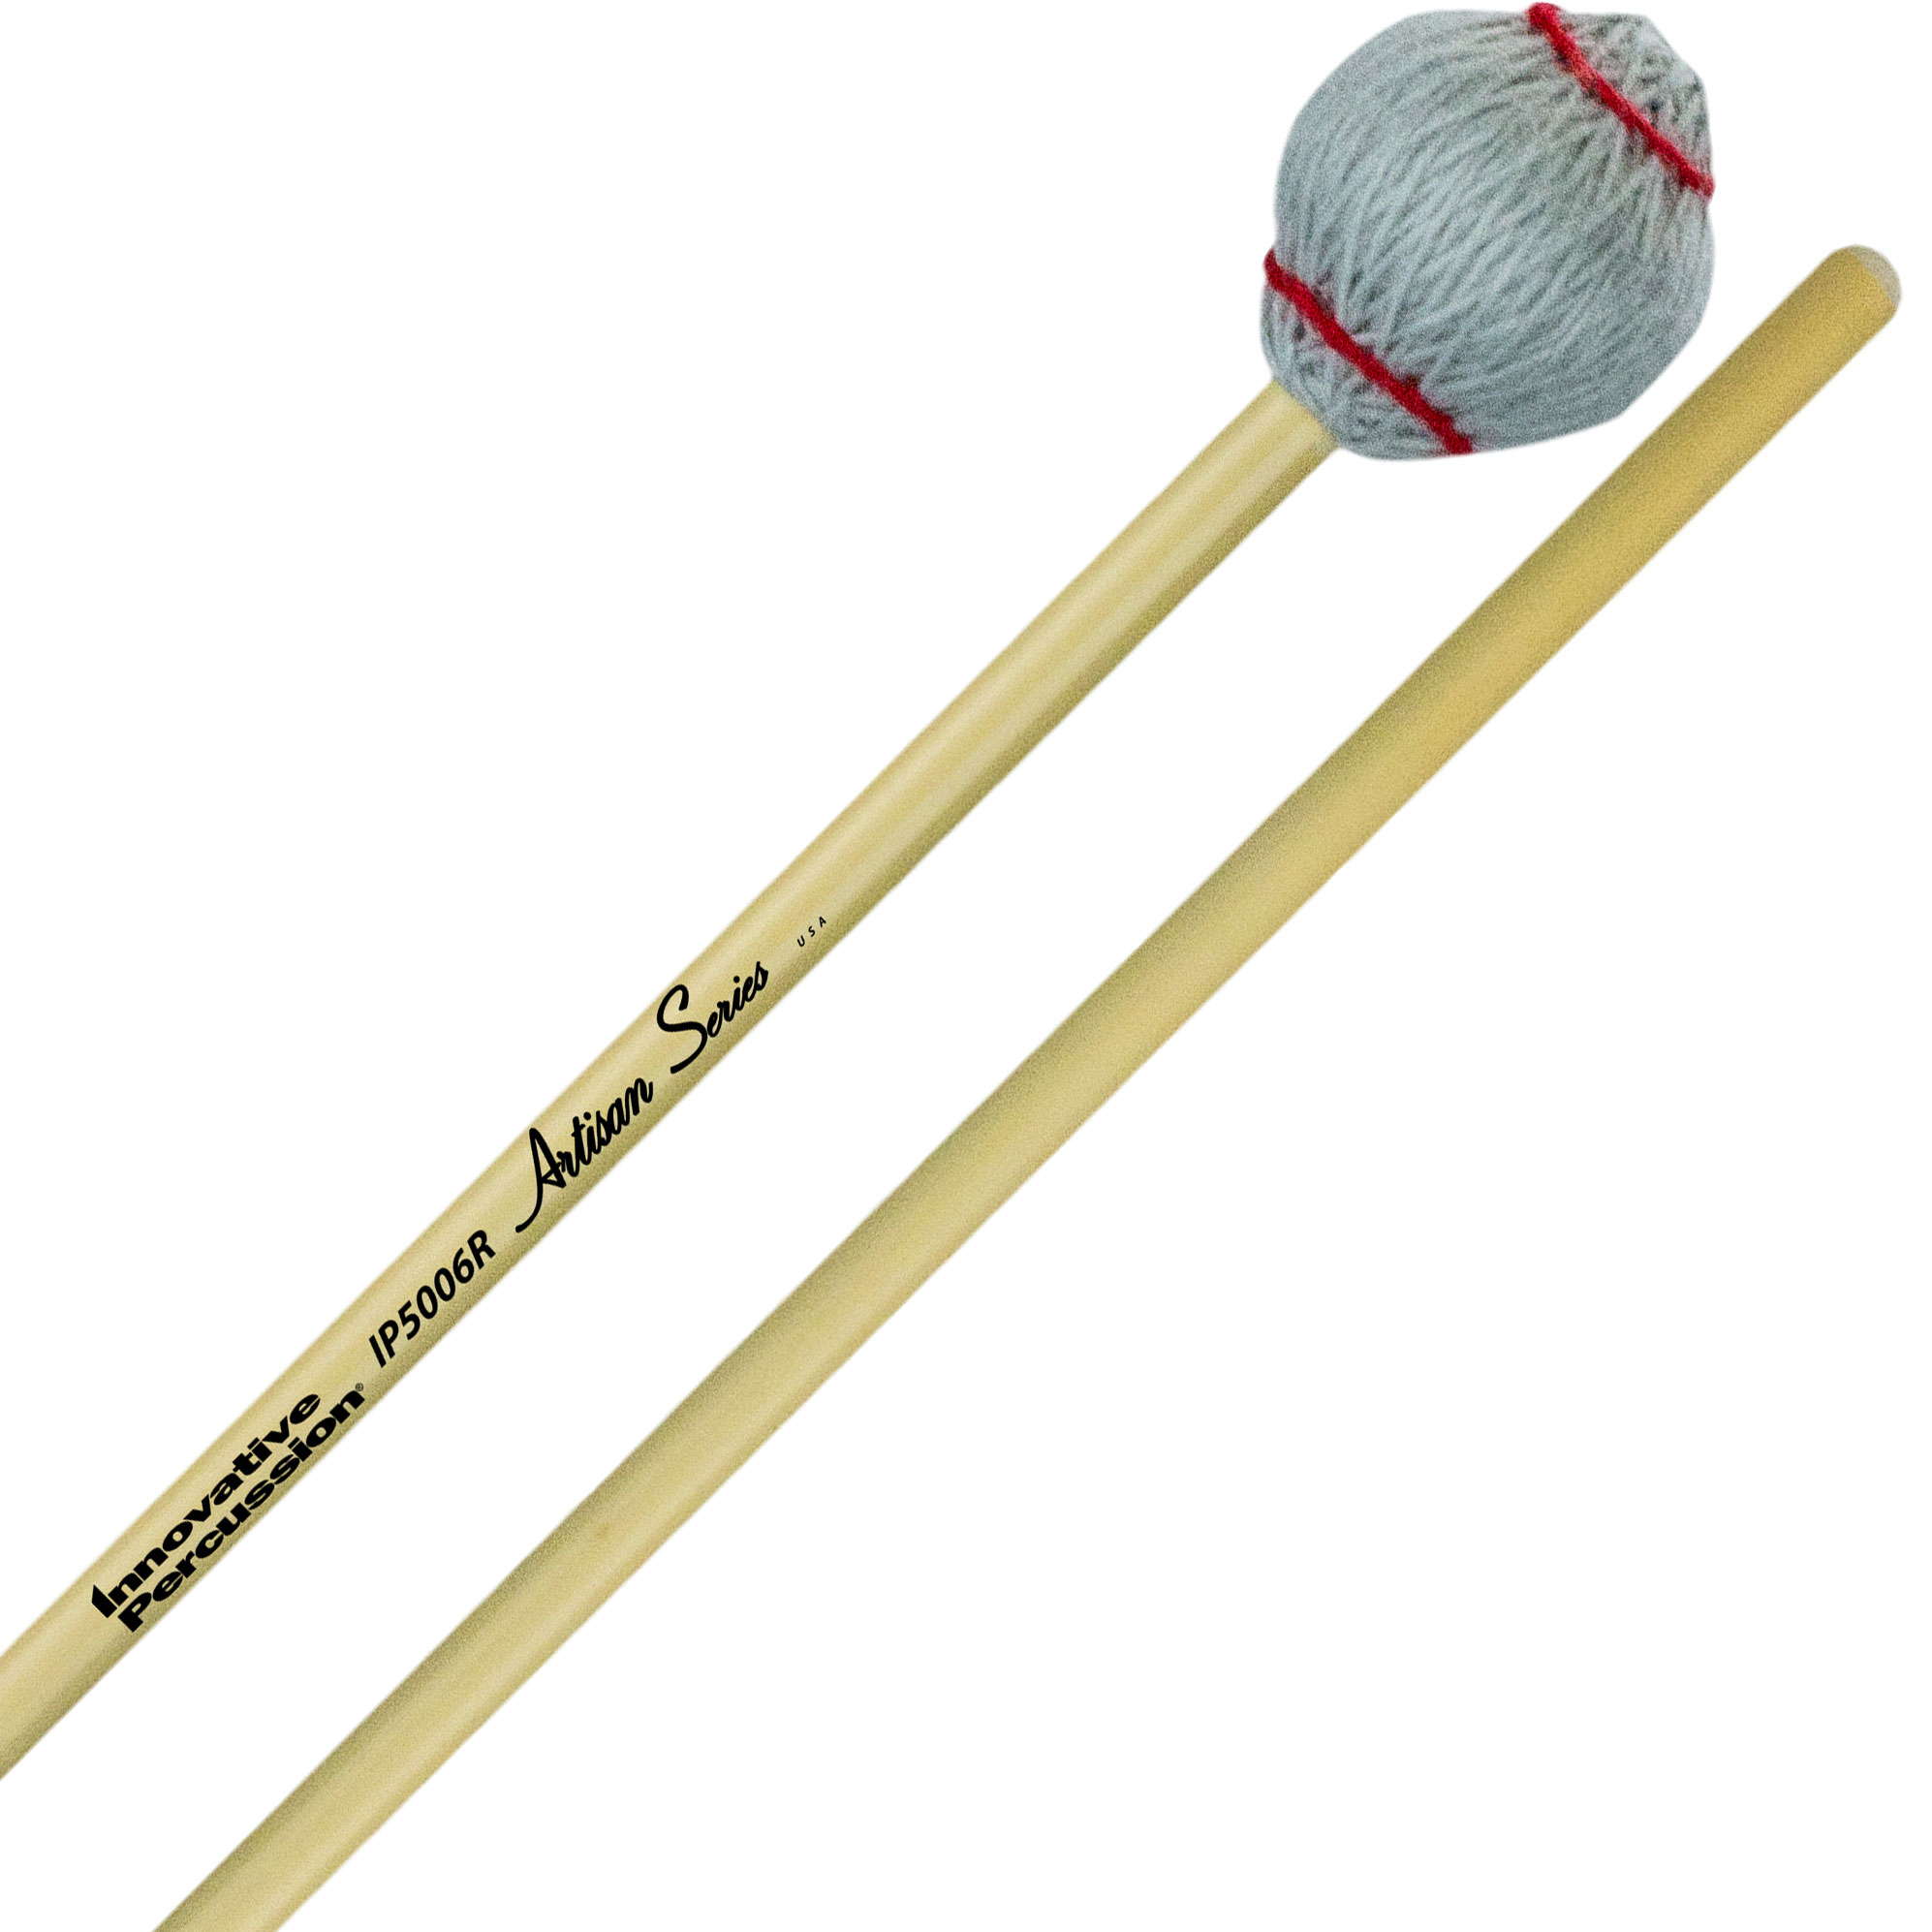 Innovative Percussion Artisan Series Very Hard Marimba Mallets with Rattan Handles